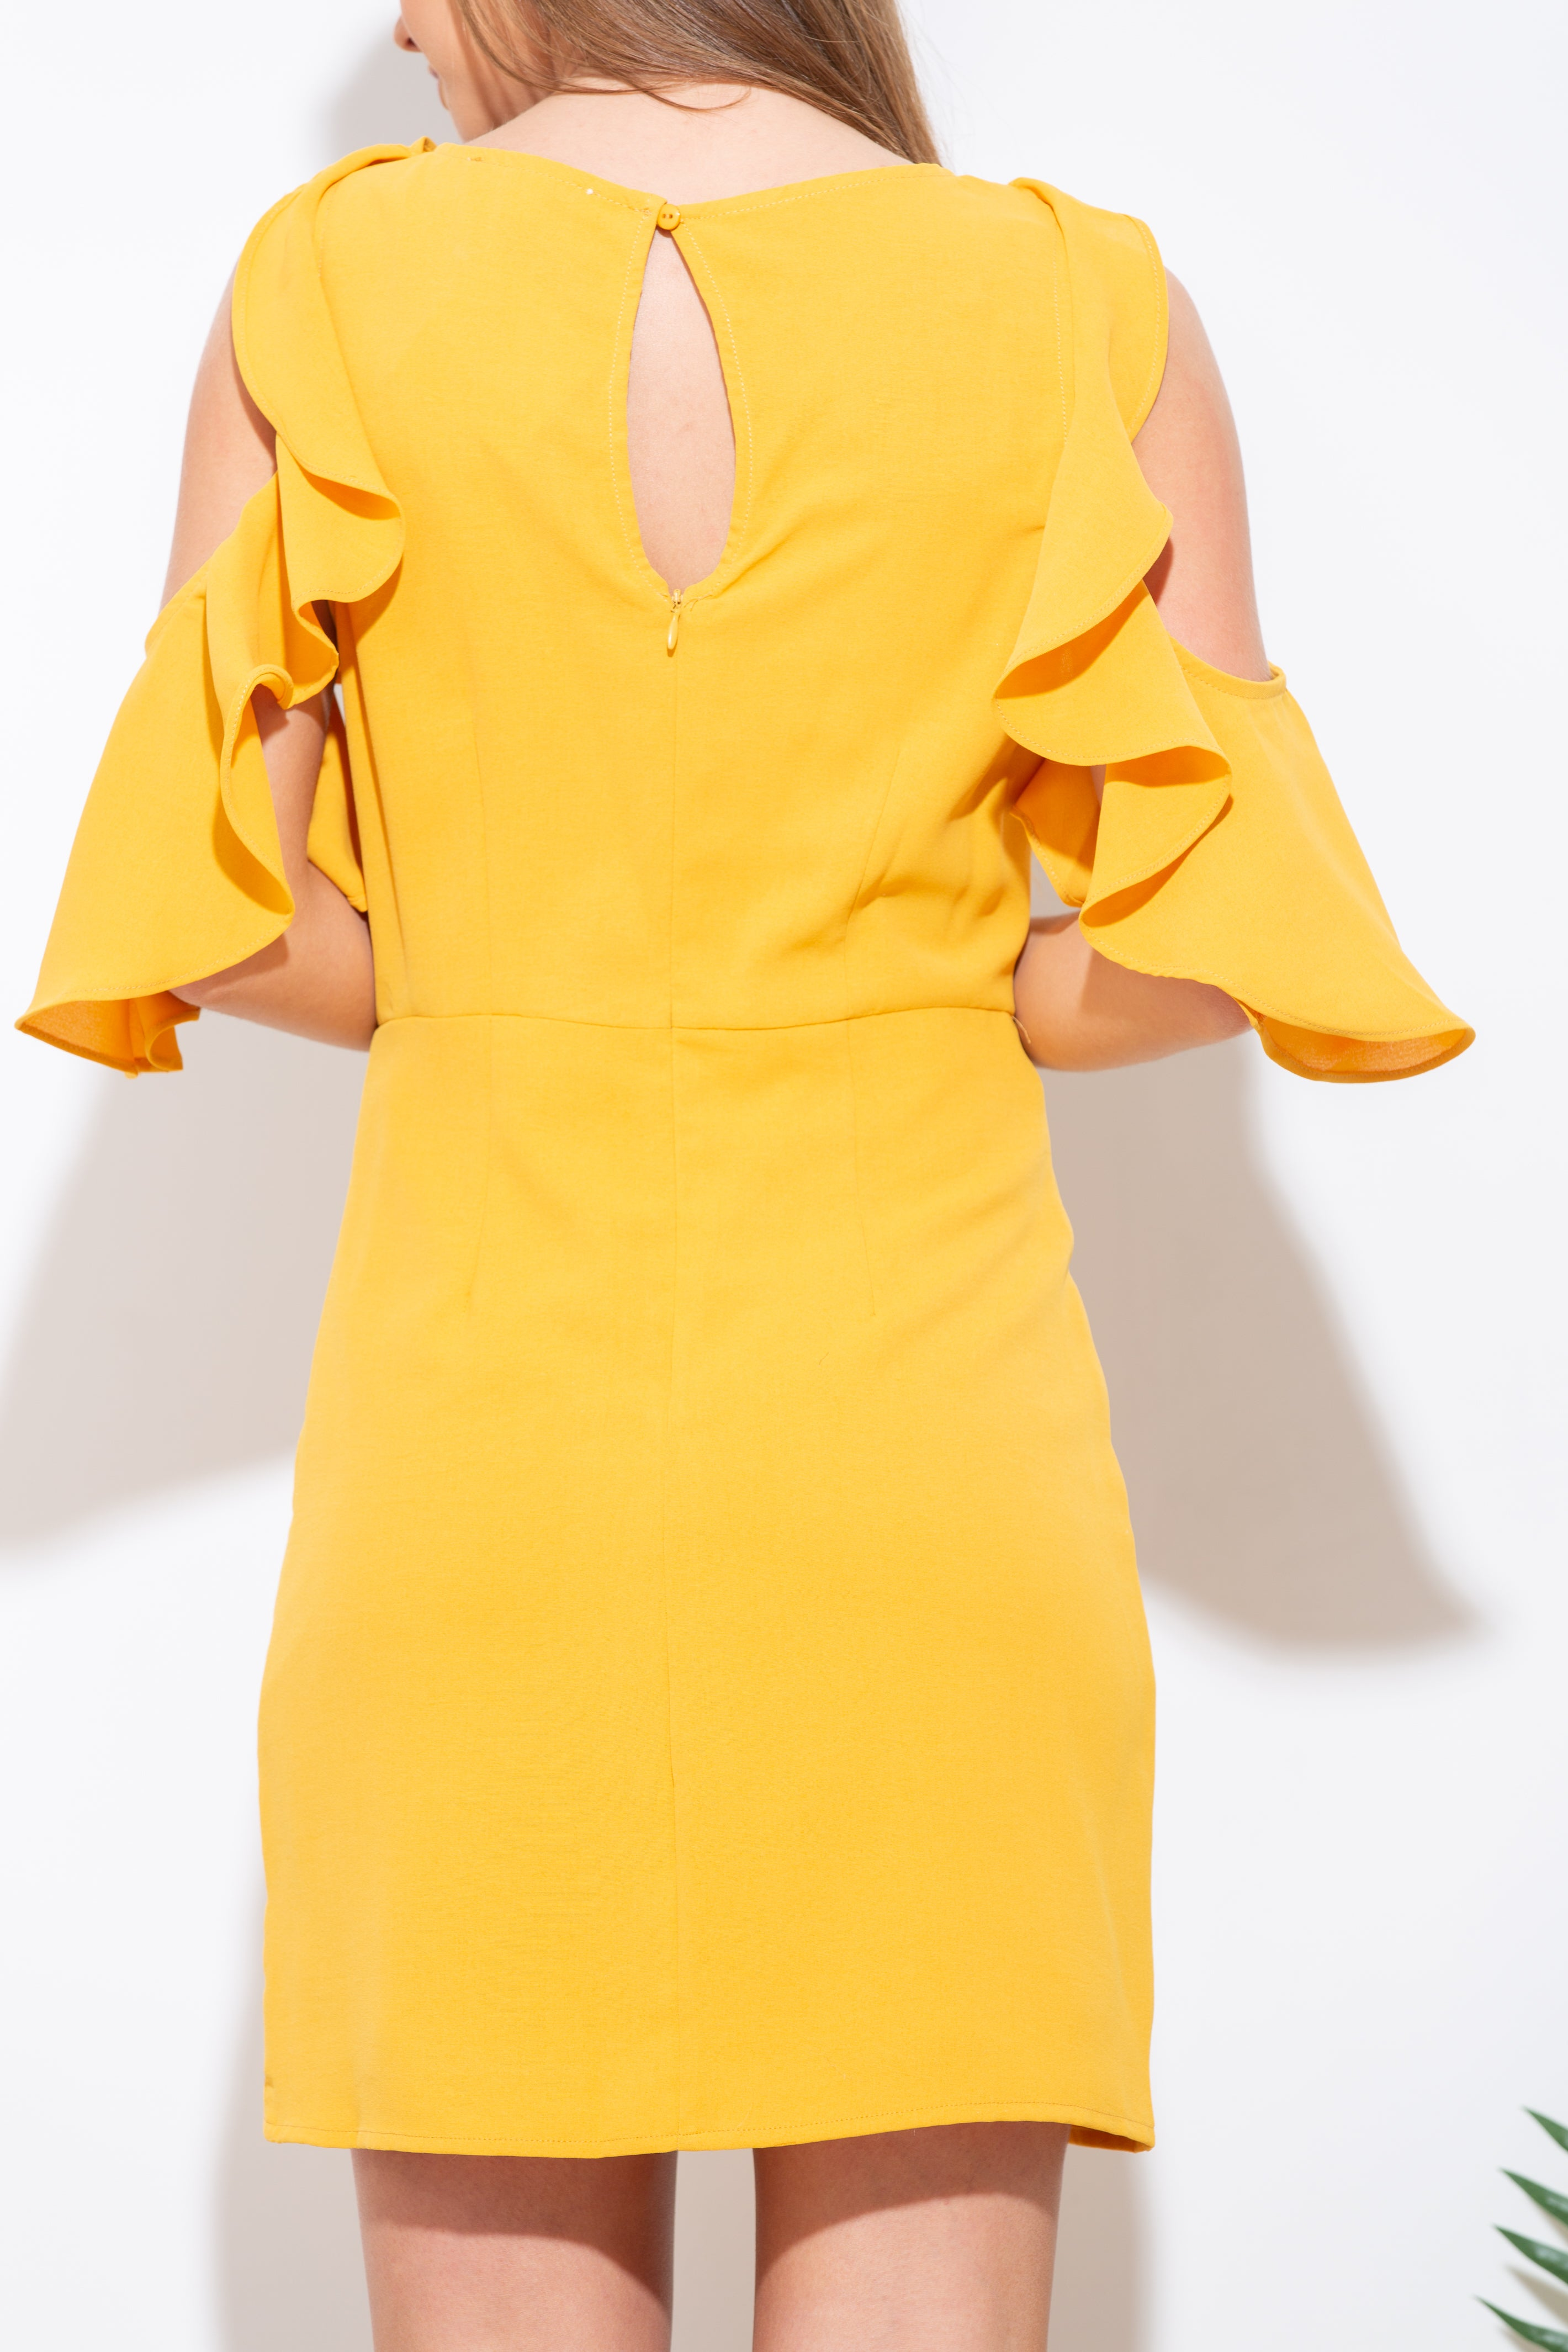 The Golden Rule Ruffle Dress